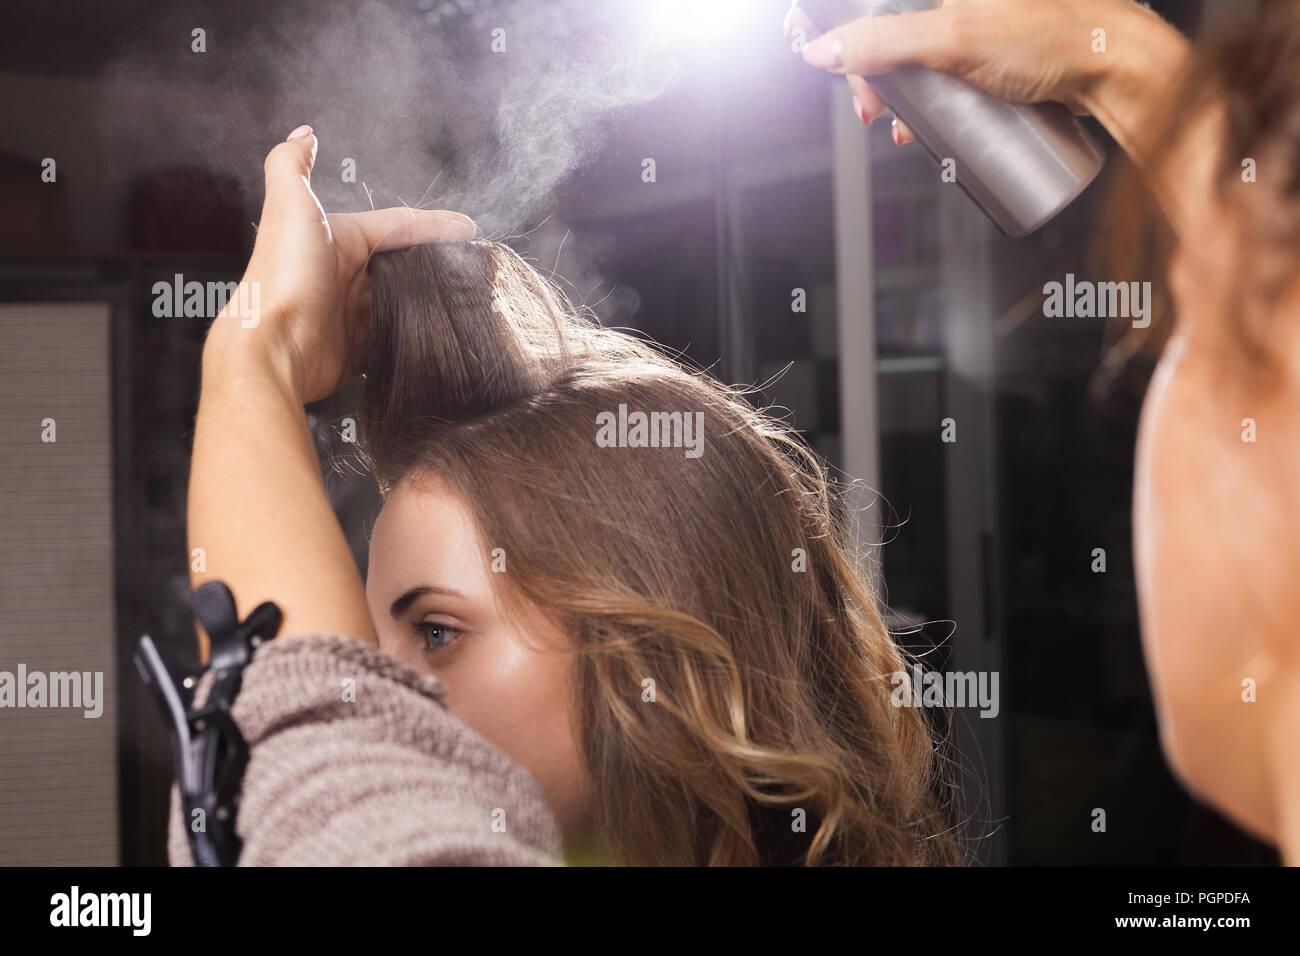 hairdresser fixing a coiffure of a girl with a hair spray - Stock Image